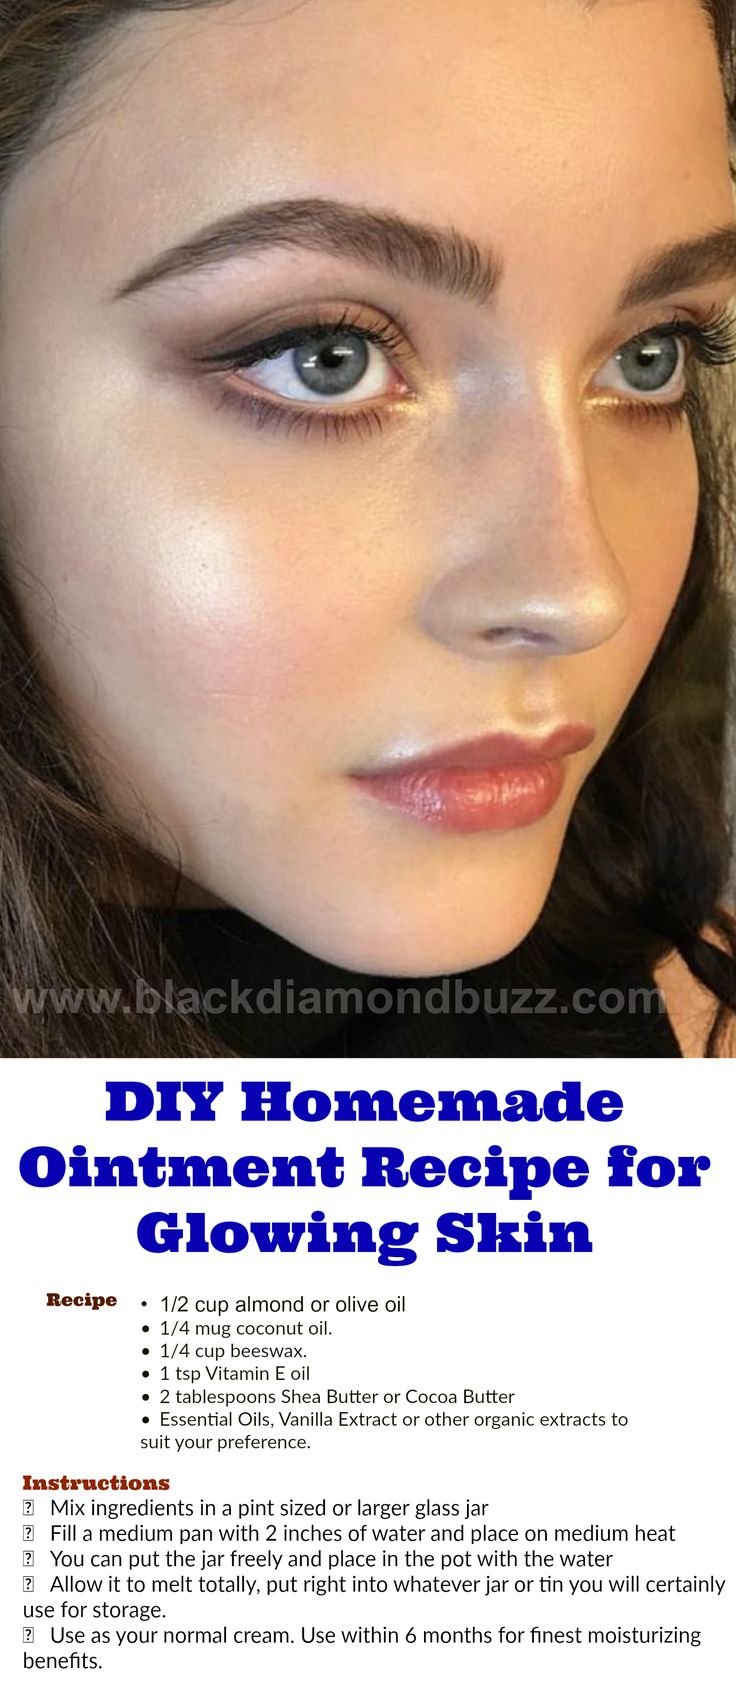 DIY Homemade Ointment Recipe for Glowing Skin  I have actually had countless demands for a much heavier, creamy homemade ointment recipe. http://www.blackdiamondbuzz.com/diy-homemade-ointment-recipe/  #makeup #lipbalm #skincare #cream #dryskin #skinproduct #ointmentrecipes #coconutoil #recipe #homerecipe #coconutrecipe #glowskin #diy #homemade #naturalremedy #homeremedy